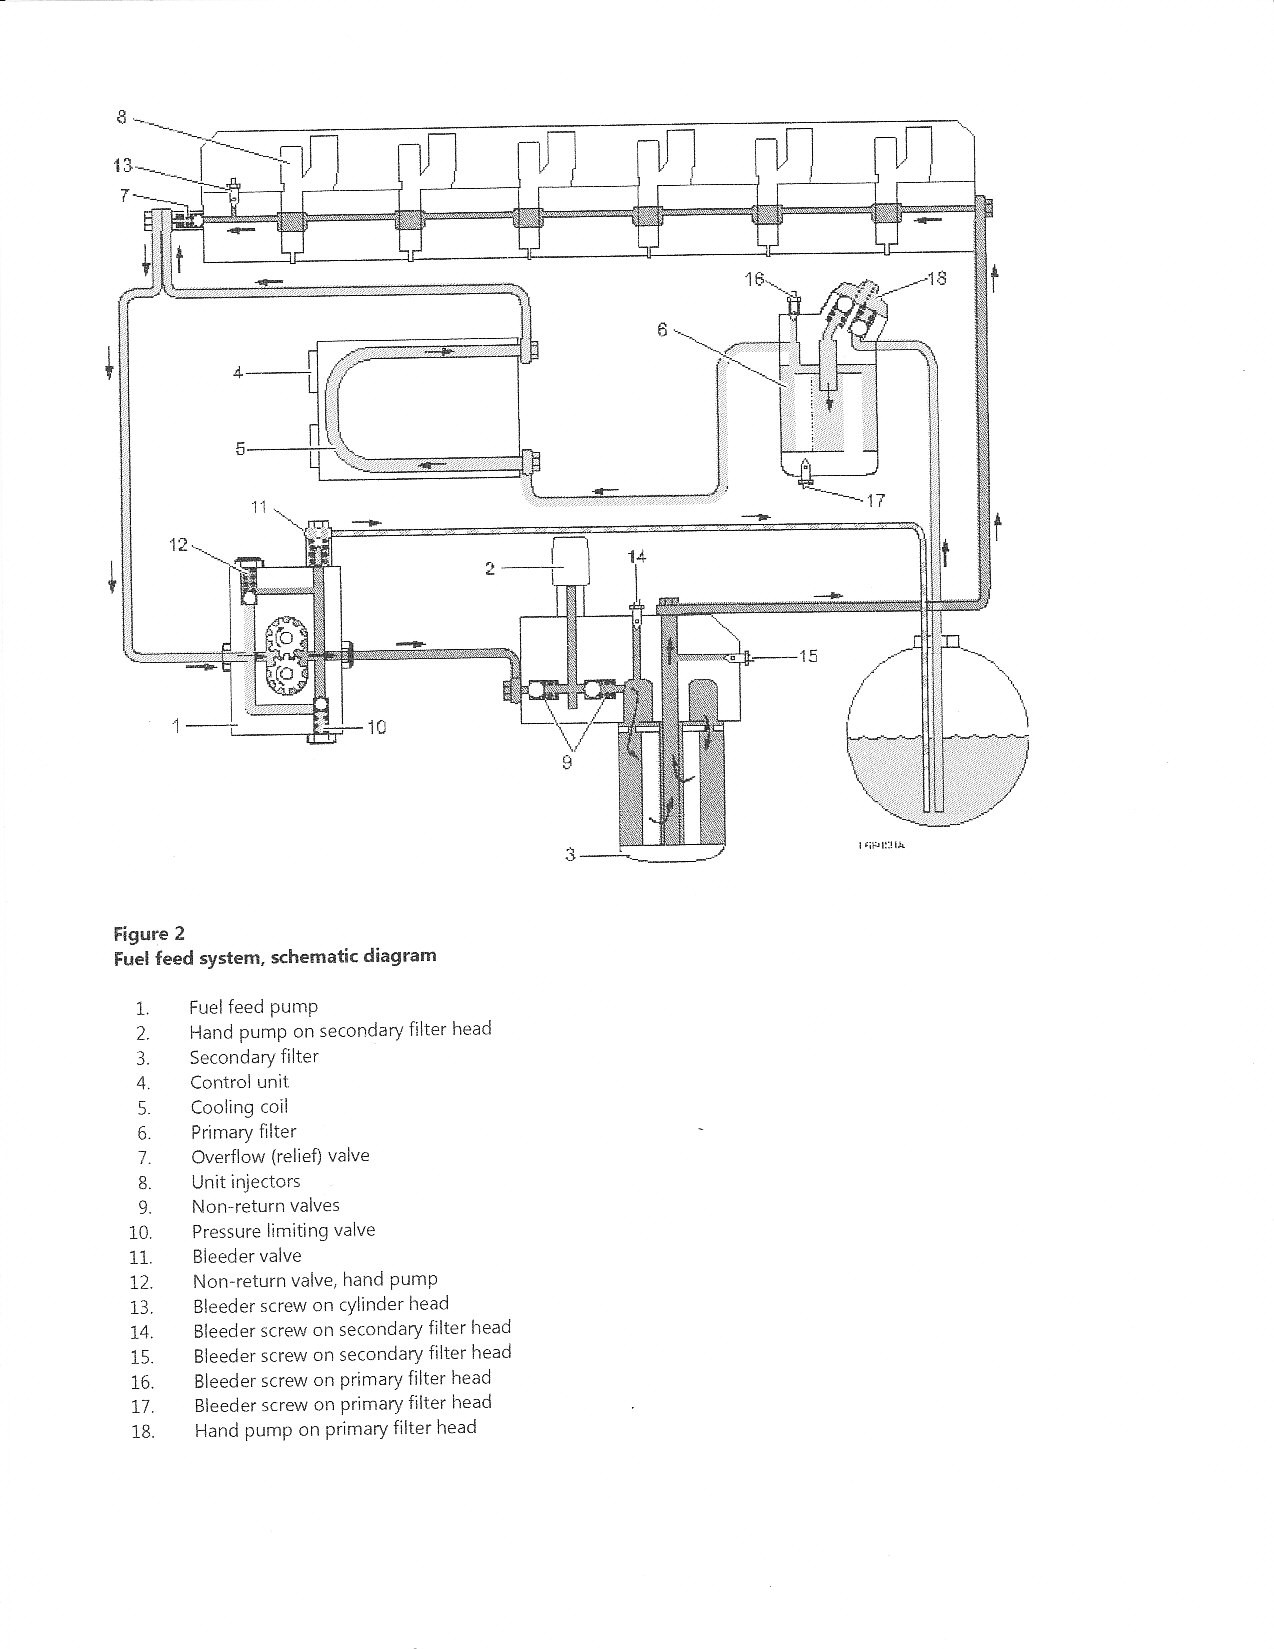 Mack Truck Fuel Pump Wiring Diagrams Content Resource Of 2004 Cx613 System Diagram In Addition Rh Detoxicrecenze Com Harness Mp7 Engine